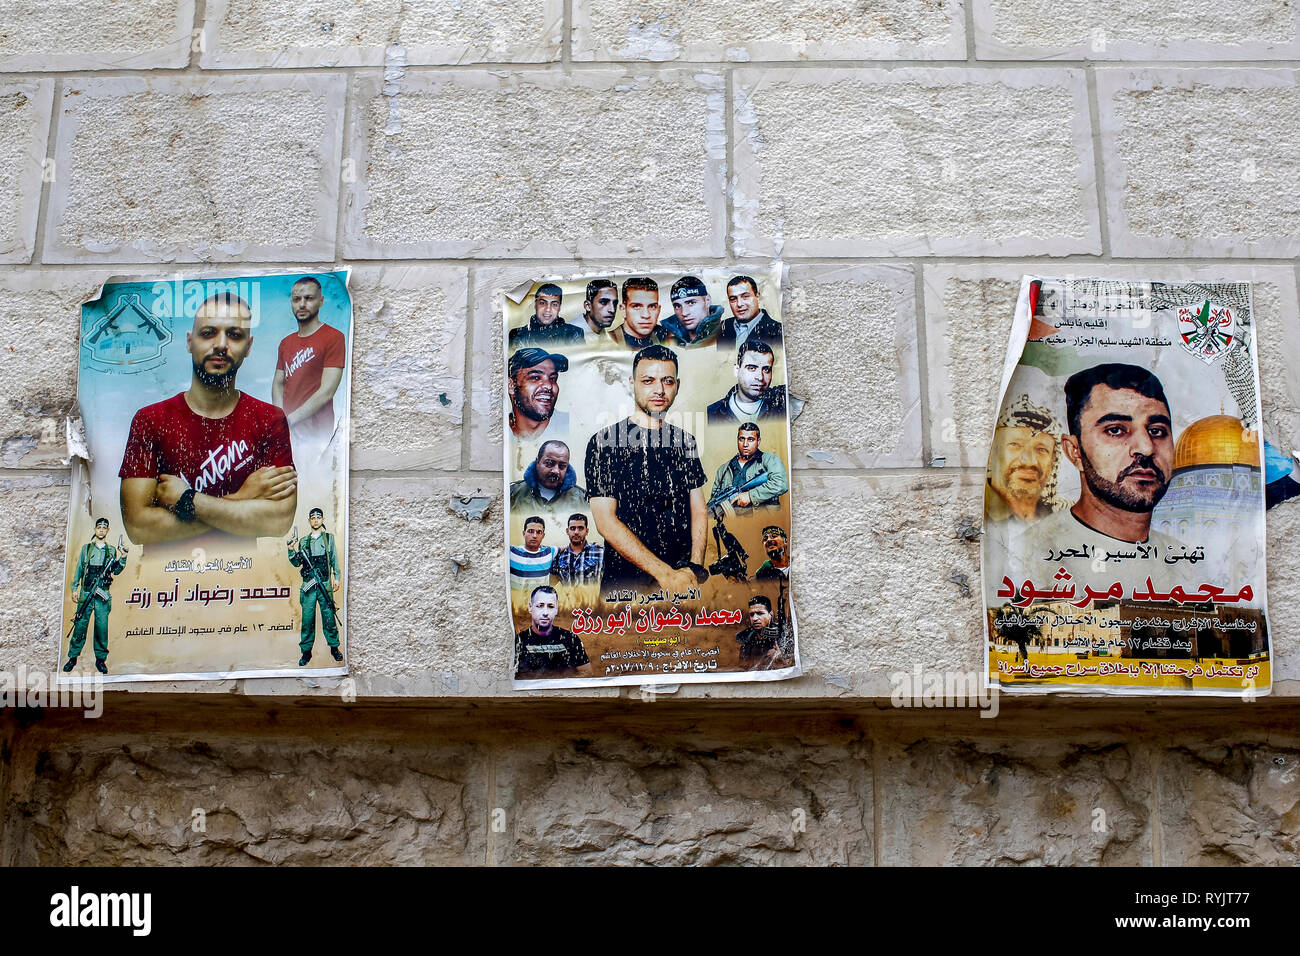 Posters honouring shaheeds (Palestinian freedom fighters) in Nablus, West Bank, Palestine. - Stock Image